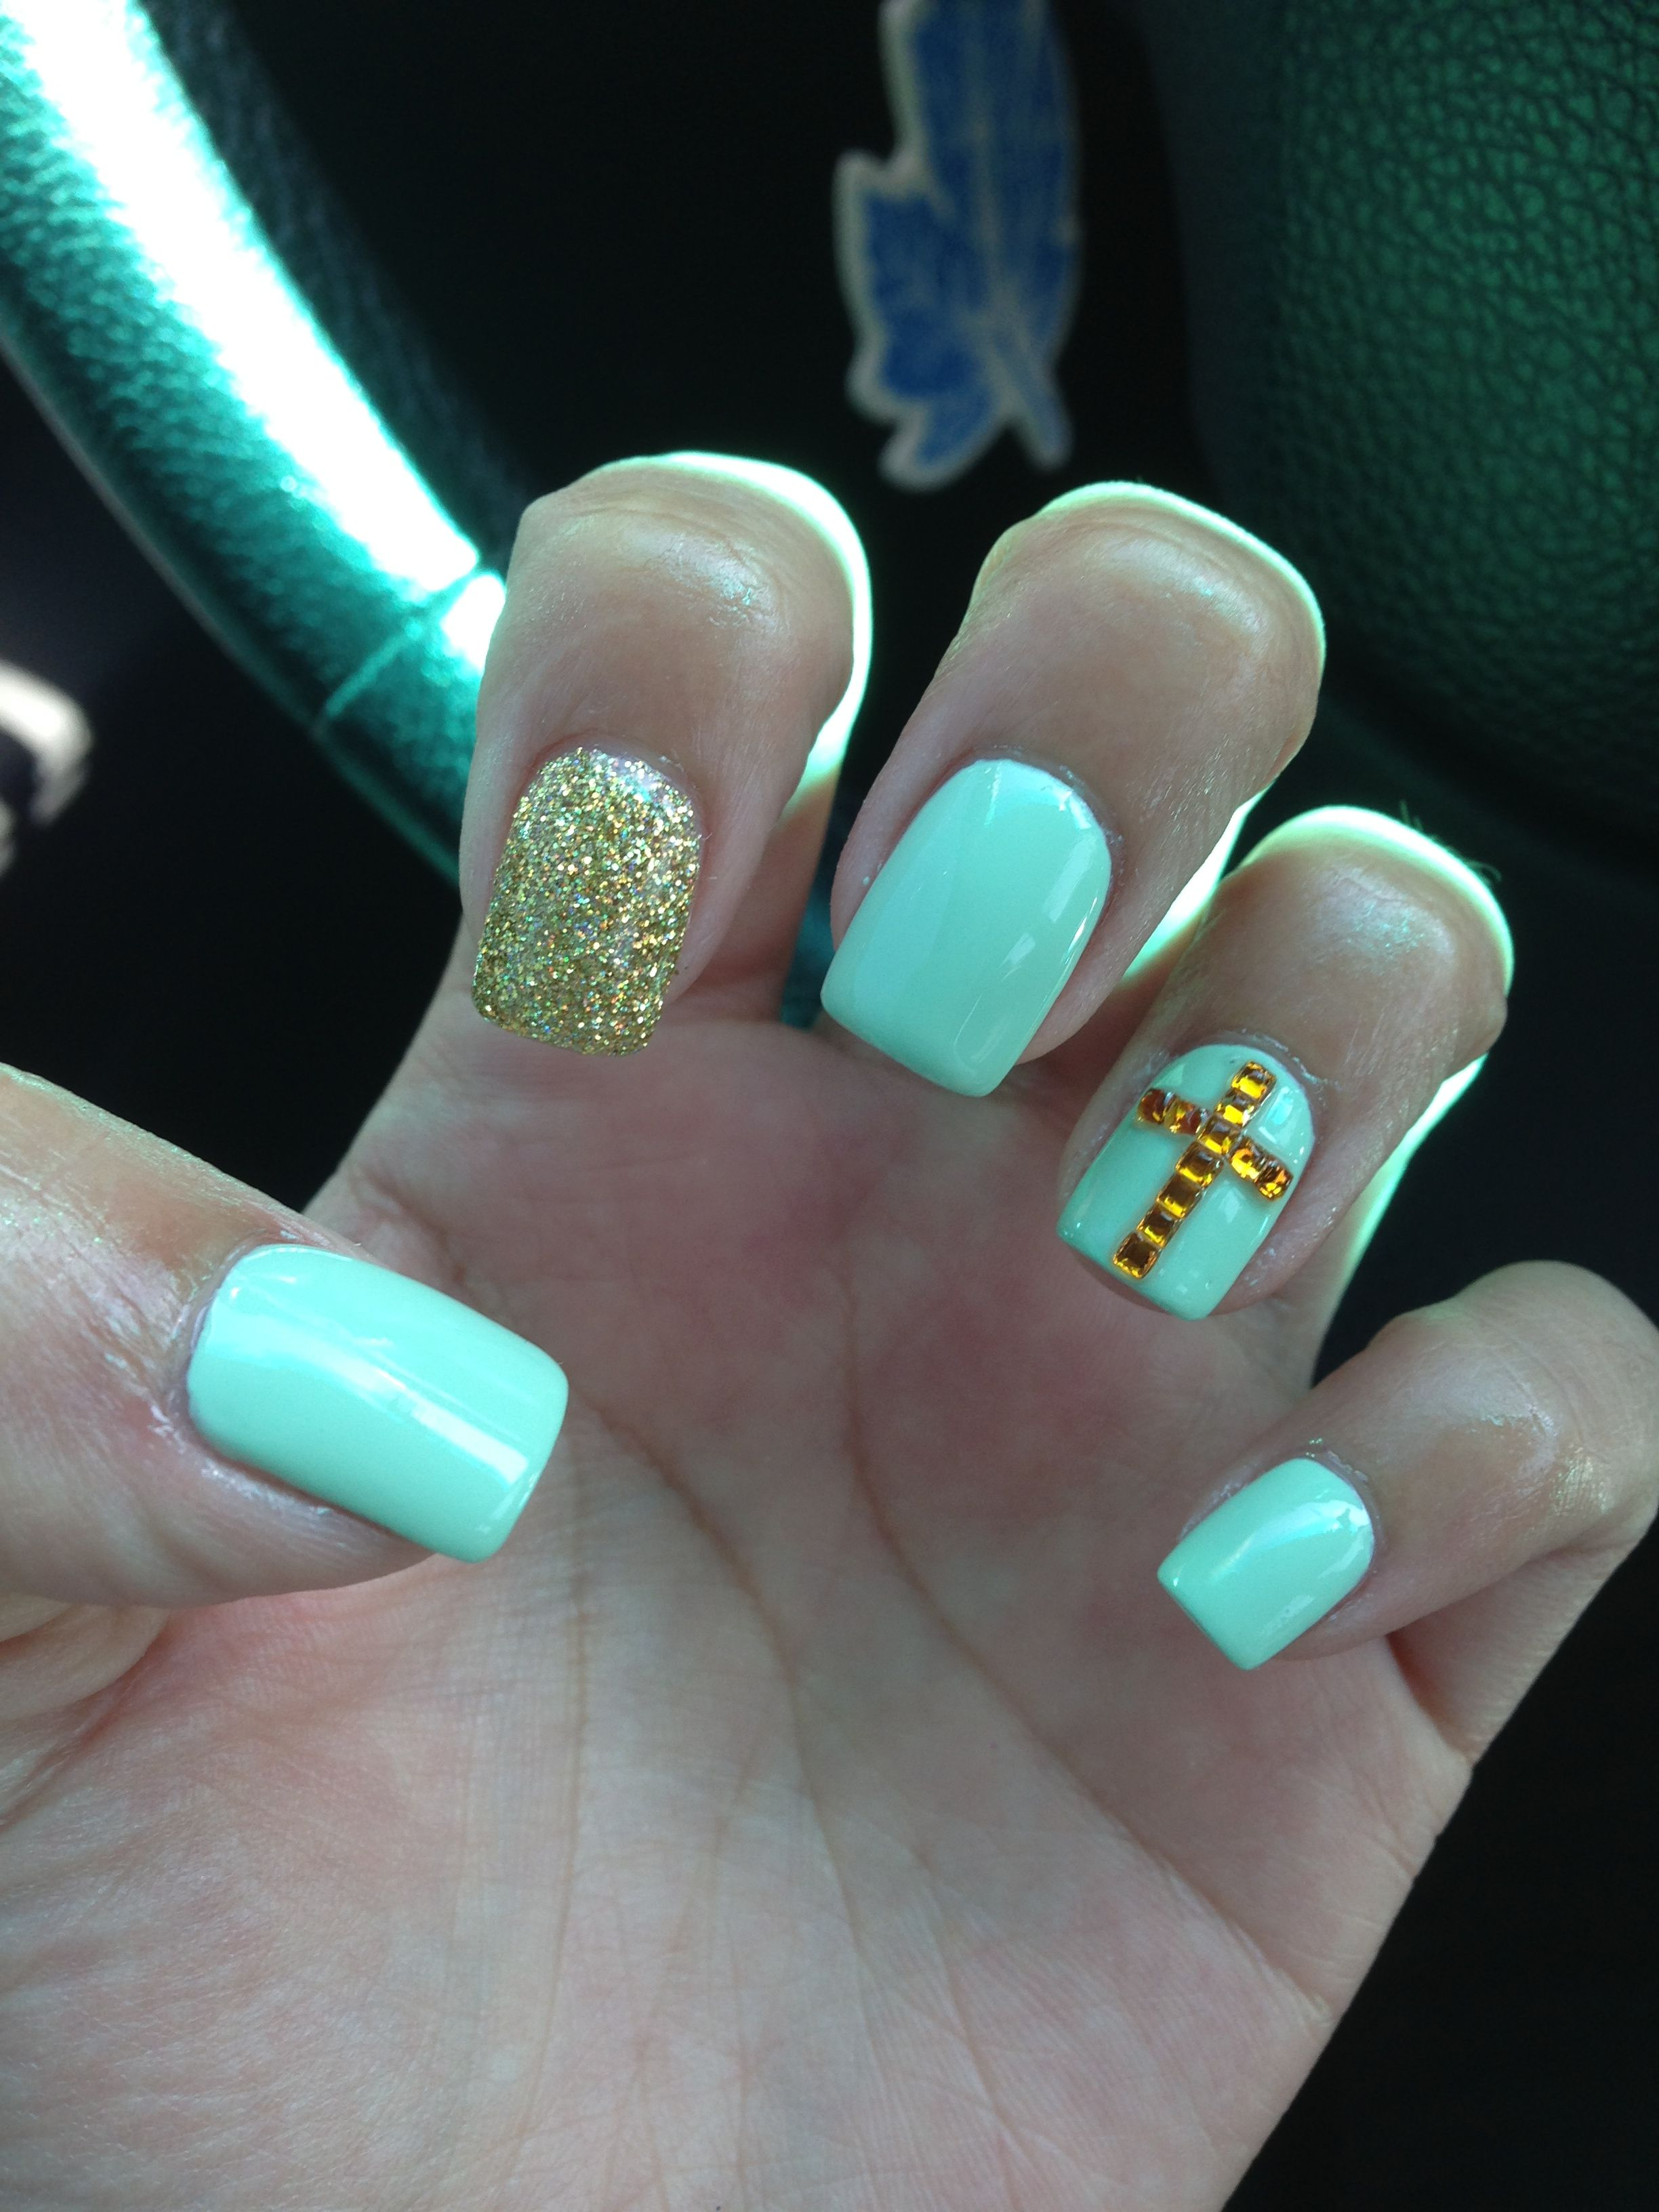 My Nails Mint Cross Nails Glitter Gold Nail Art